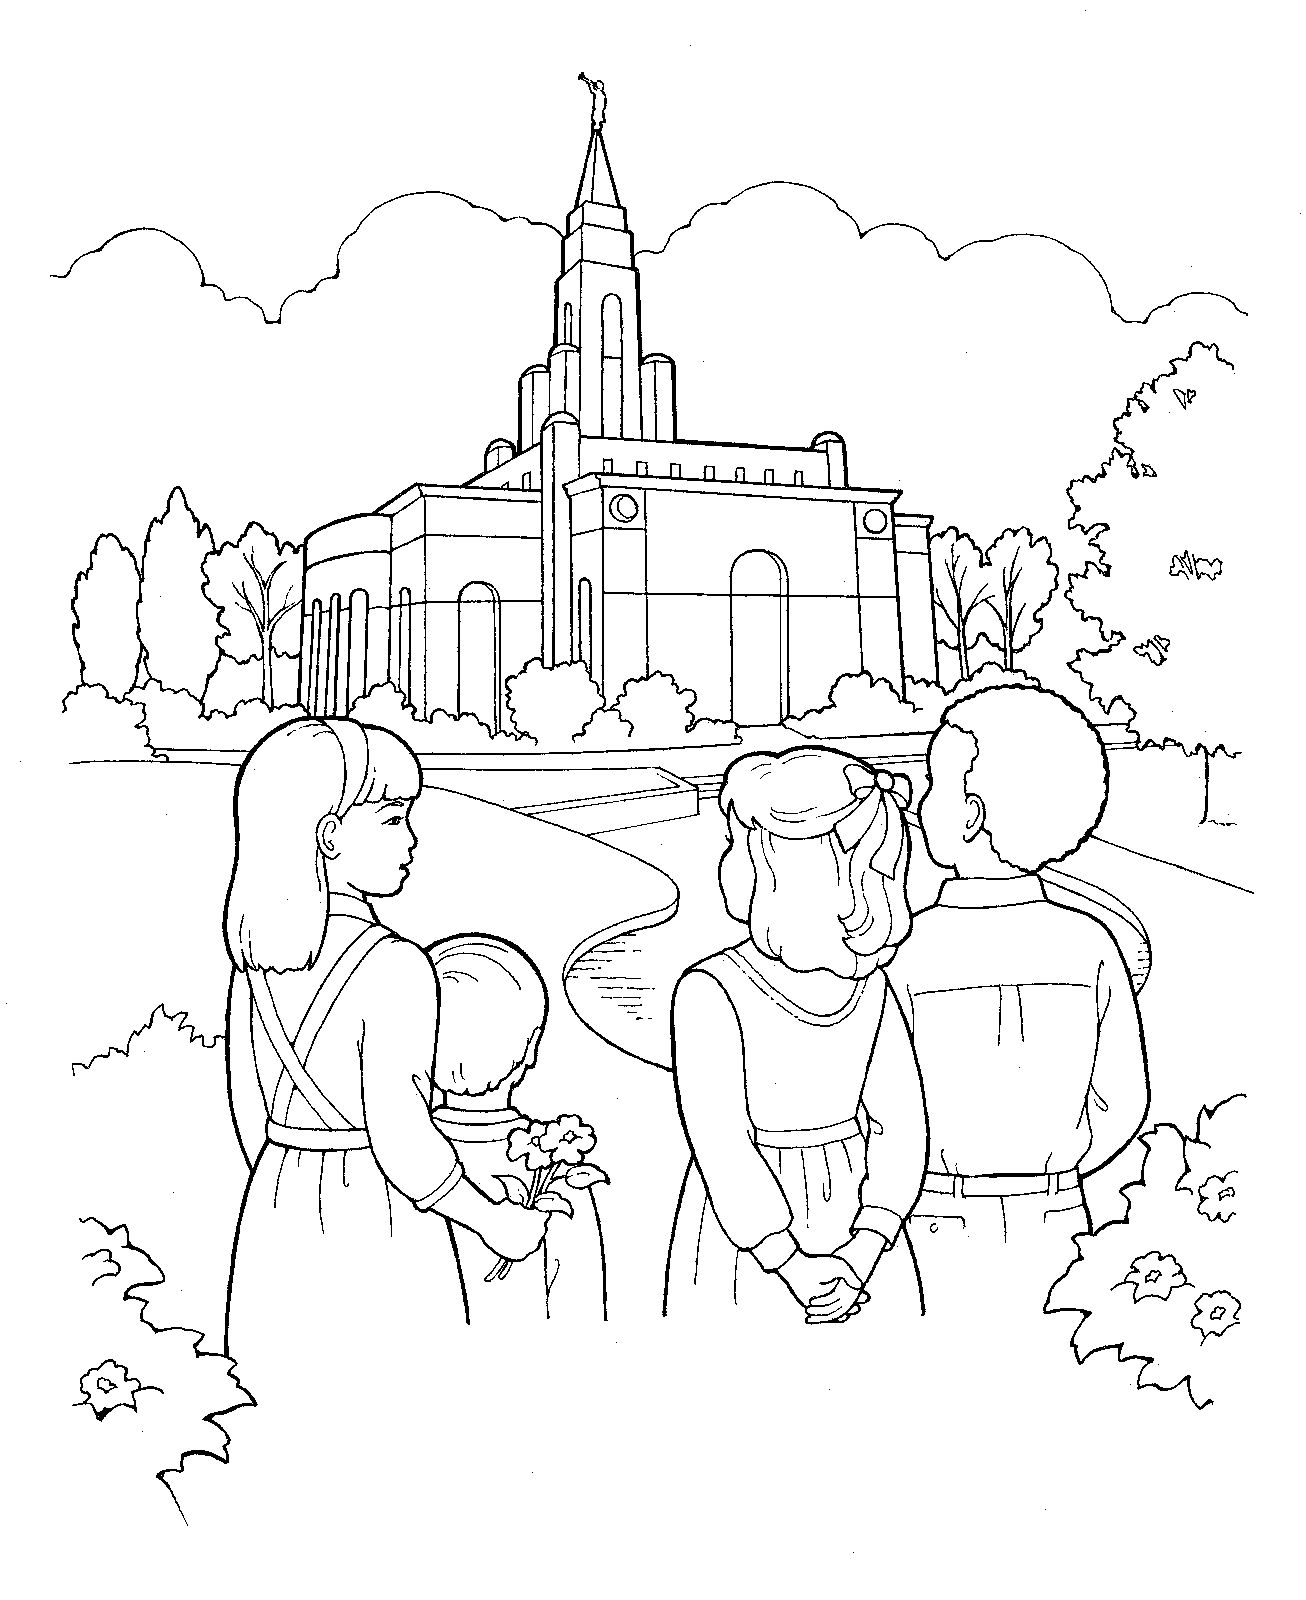 church family coloring pages image result for circle of people coloring page people church coloring pages family